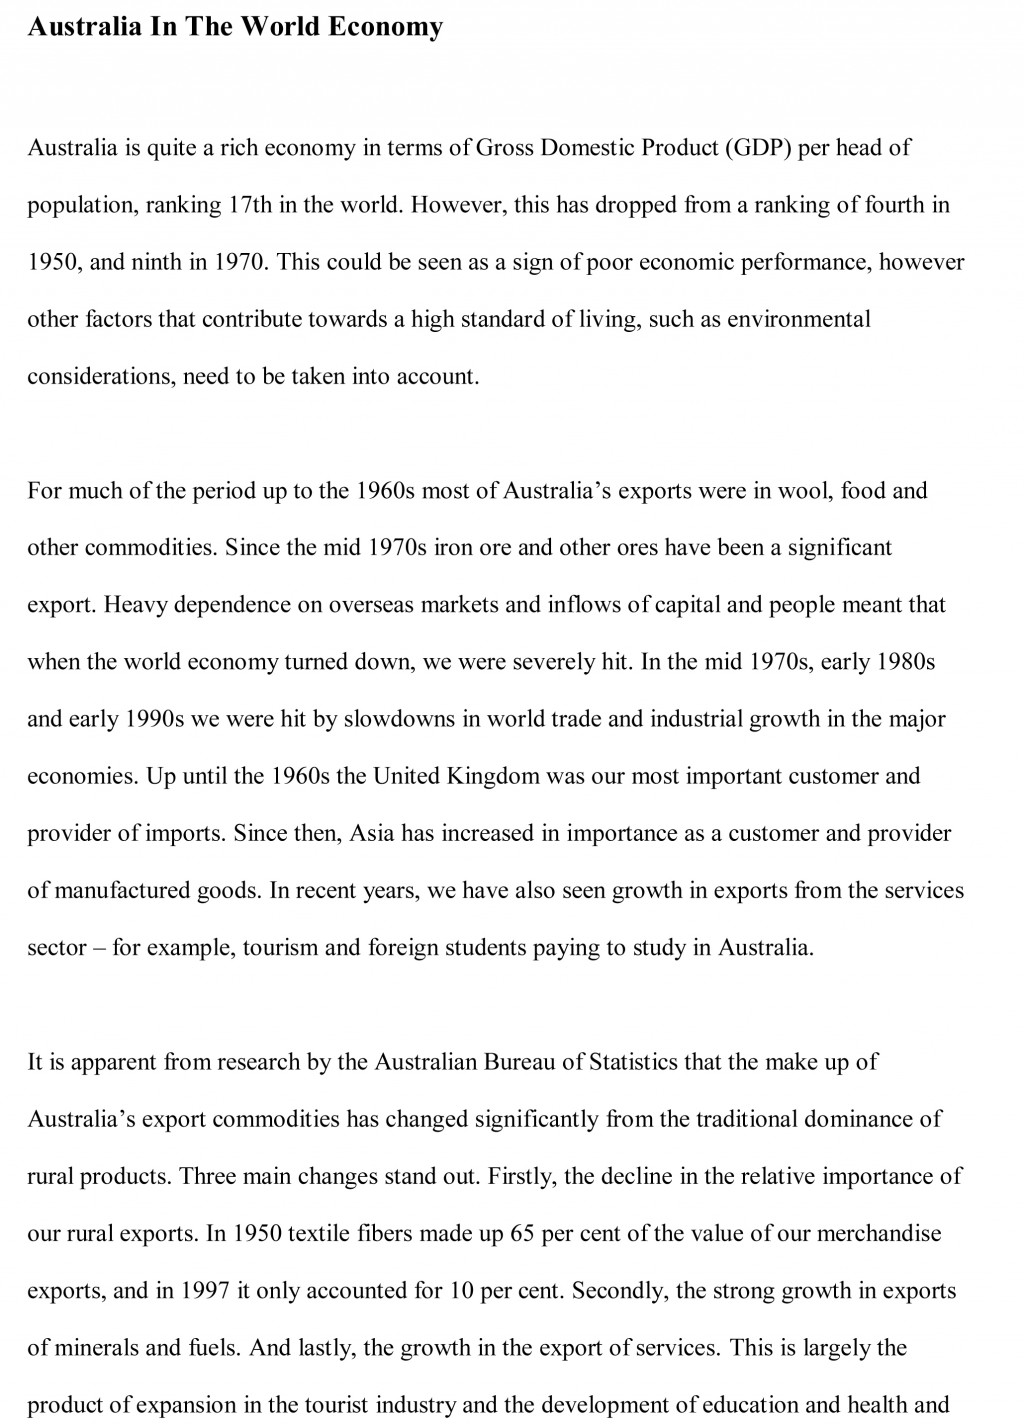 014 Essay Example How To Essays Economics Free Excellent Write An Expository For 4th Grade Make Longer With Words Start Introduction Large